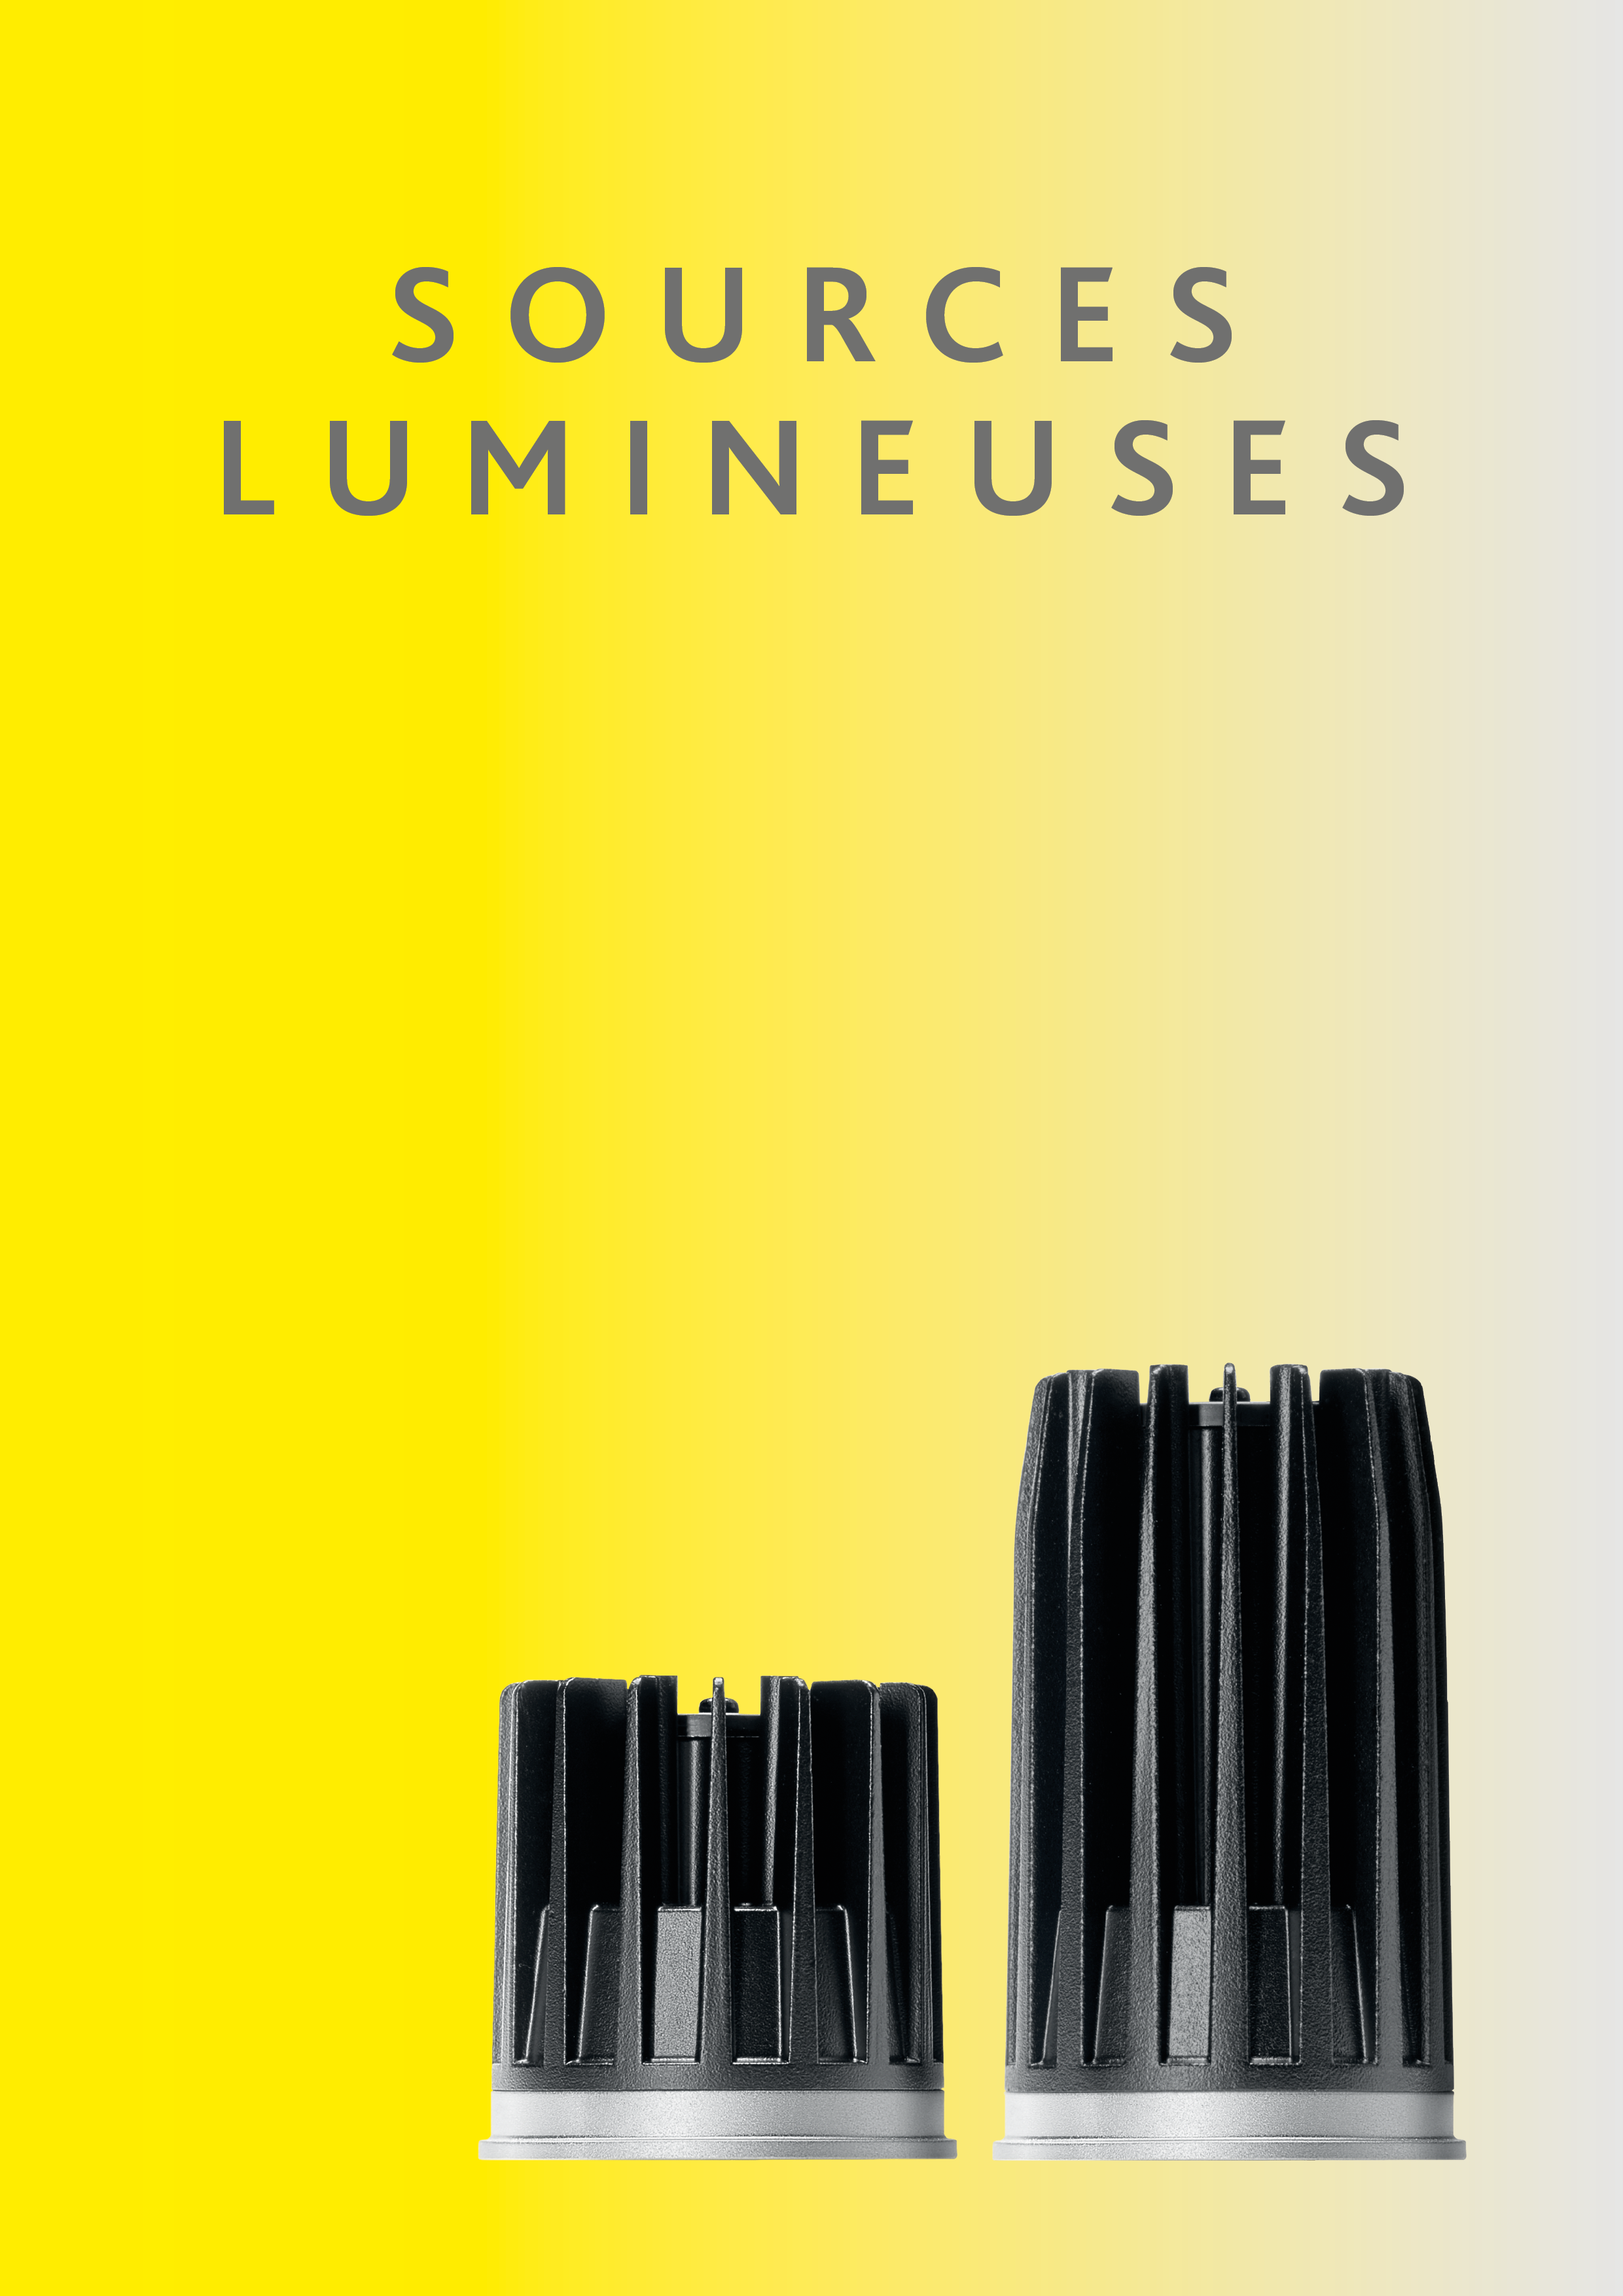 Sources lumineuses